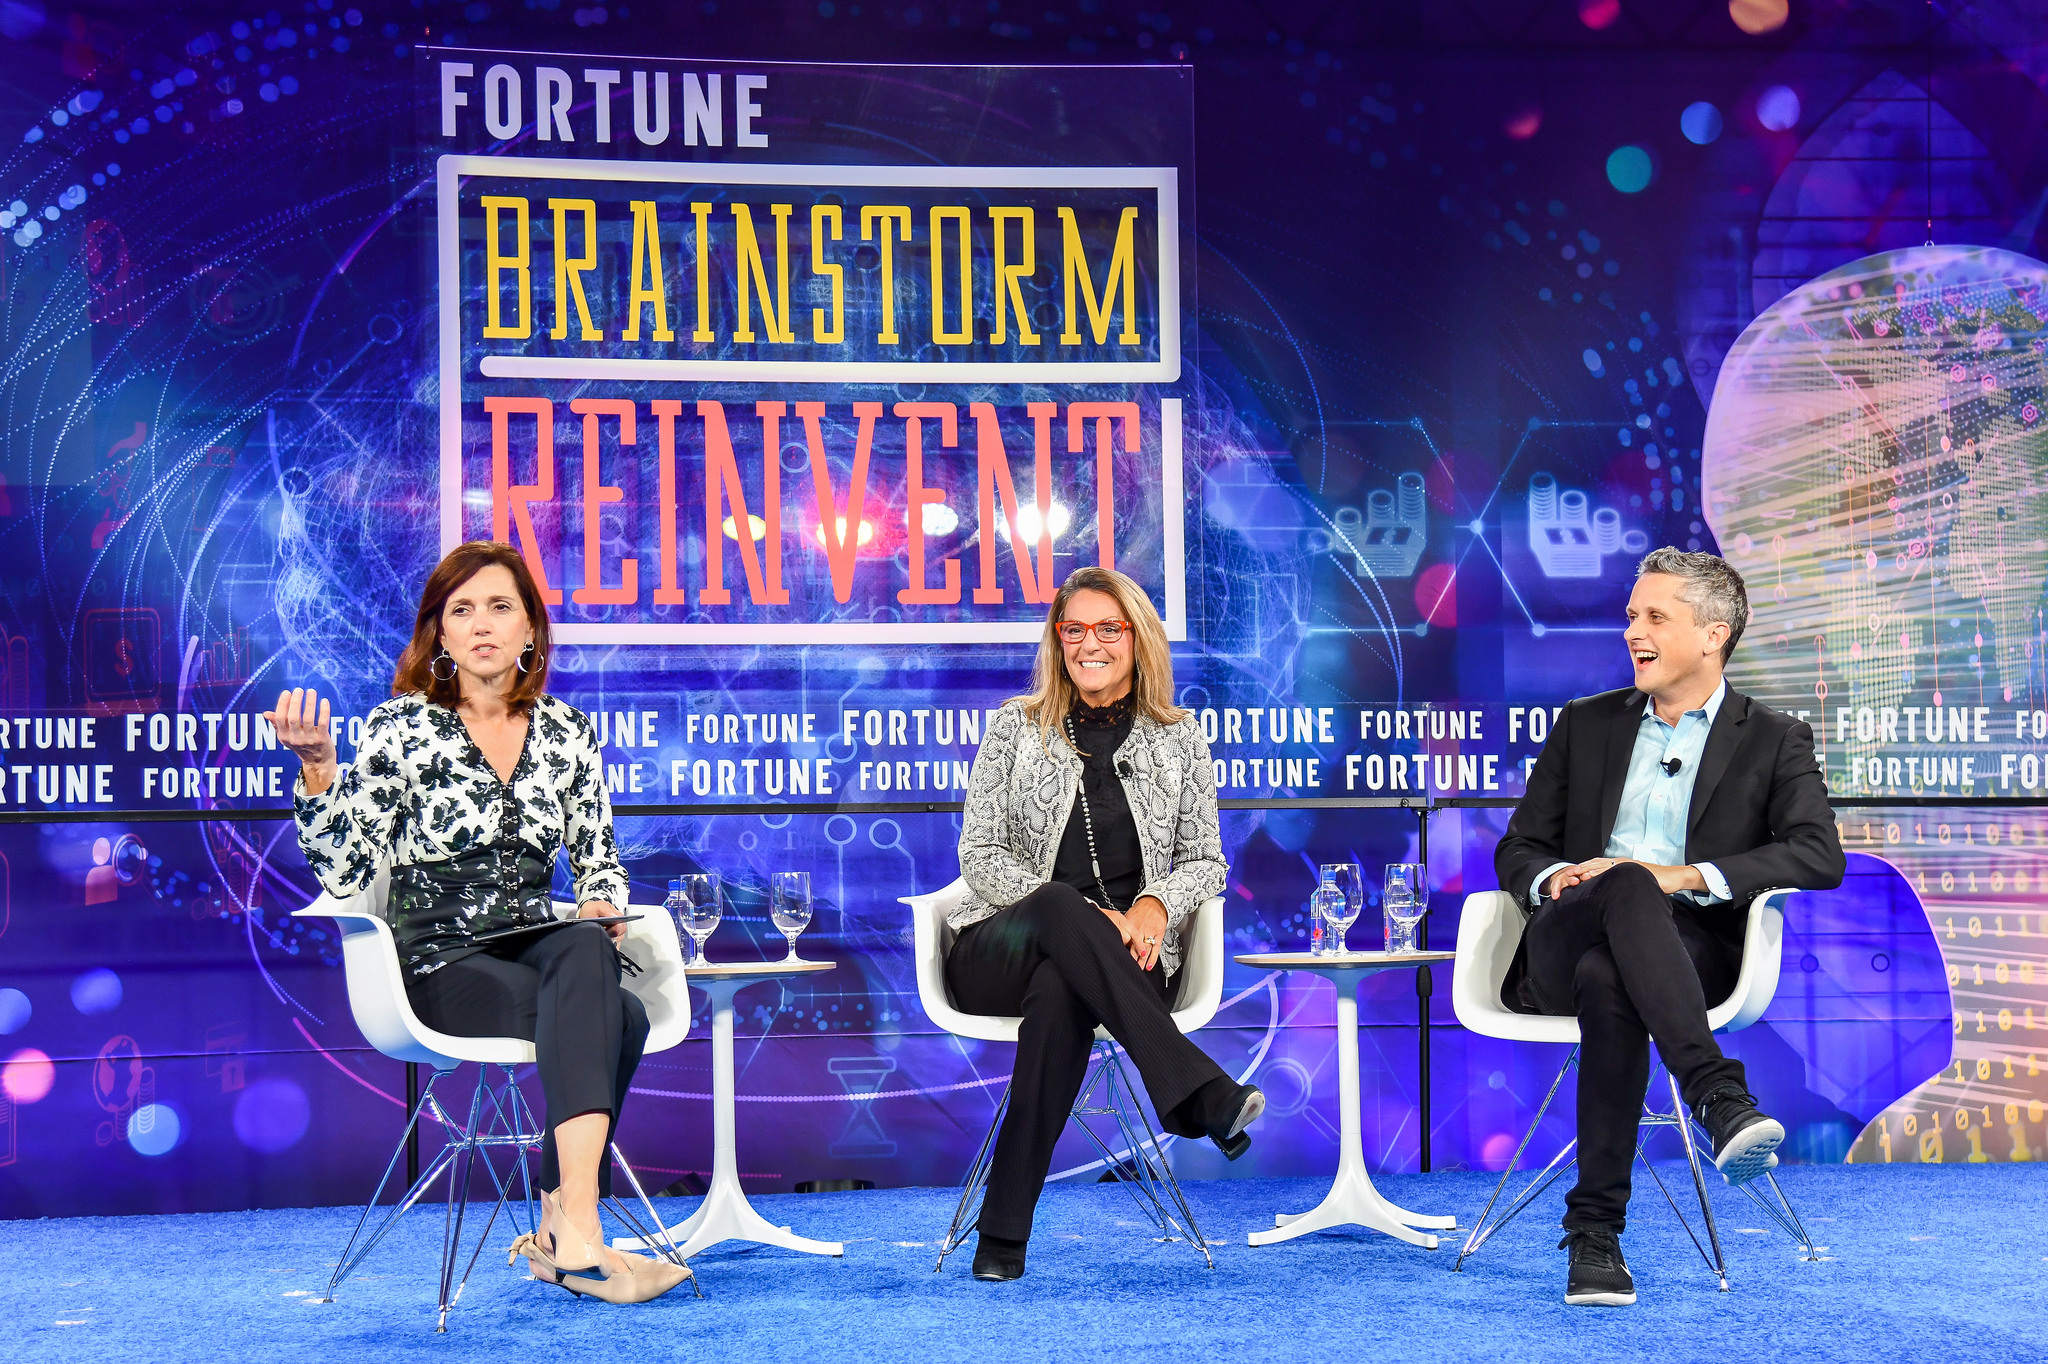 Moderator Beth Comstock (L), co-chair of Fortune's Brainstorm Reinvent conference, speaks with Melanie Kalmar, corporate vice president, chief information officer, and chief digital officer of Dow Chemical, and Aaron Levie, co-founder, chairman, and CEO of Box, at the conference in Chicago on Sept. 25, 2018.